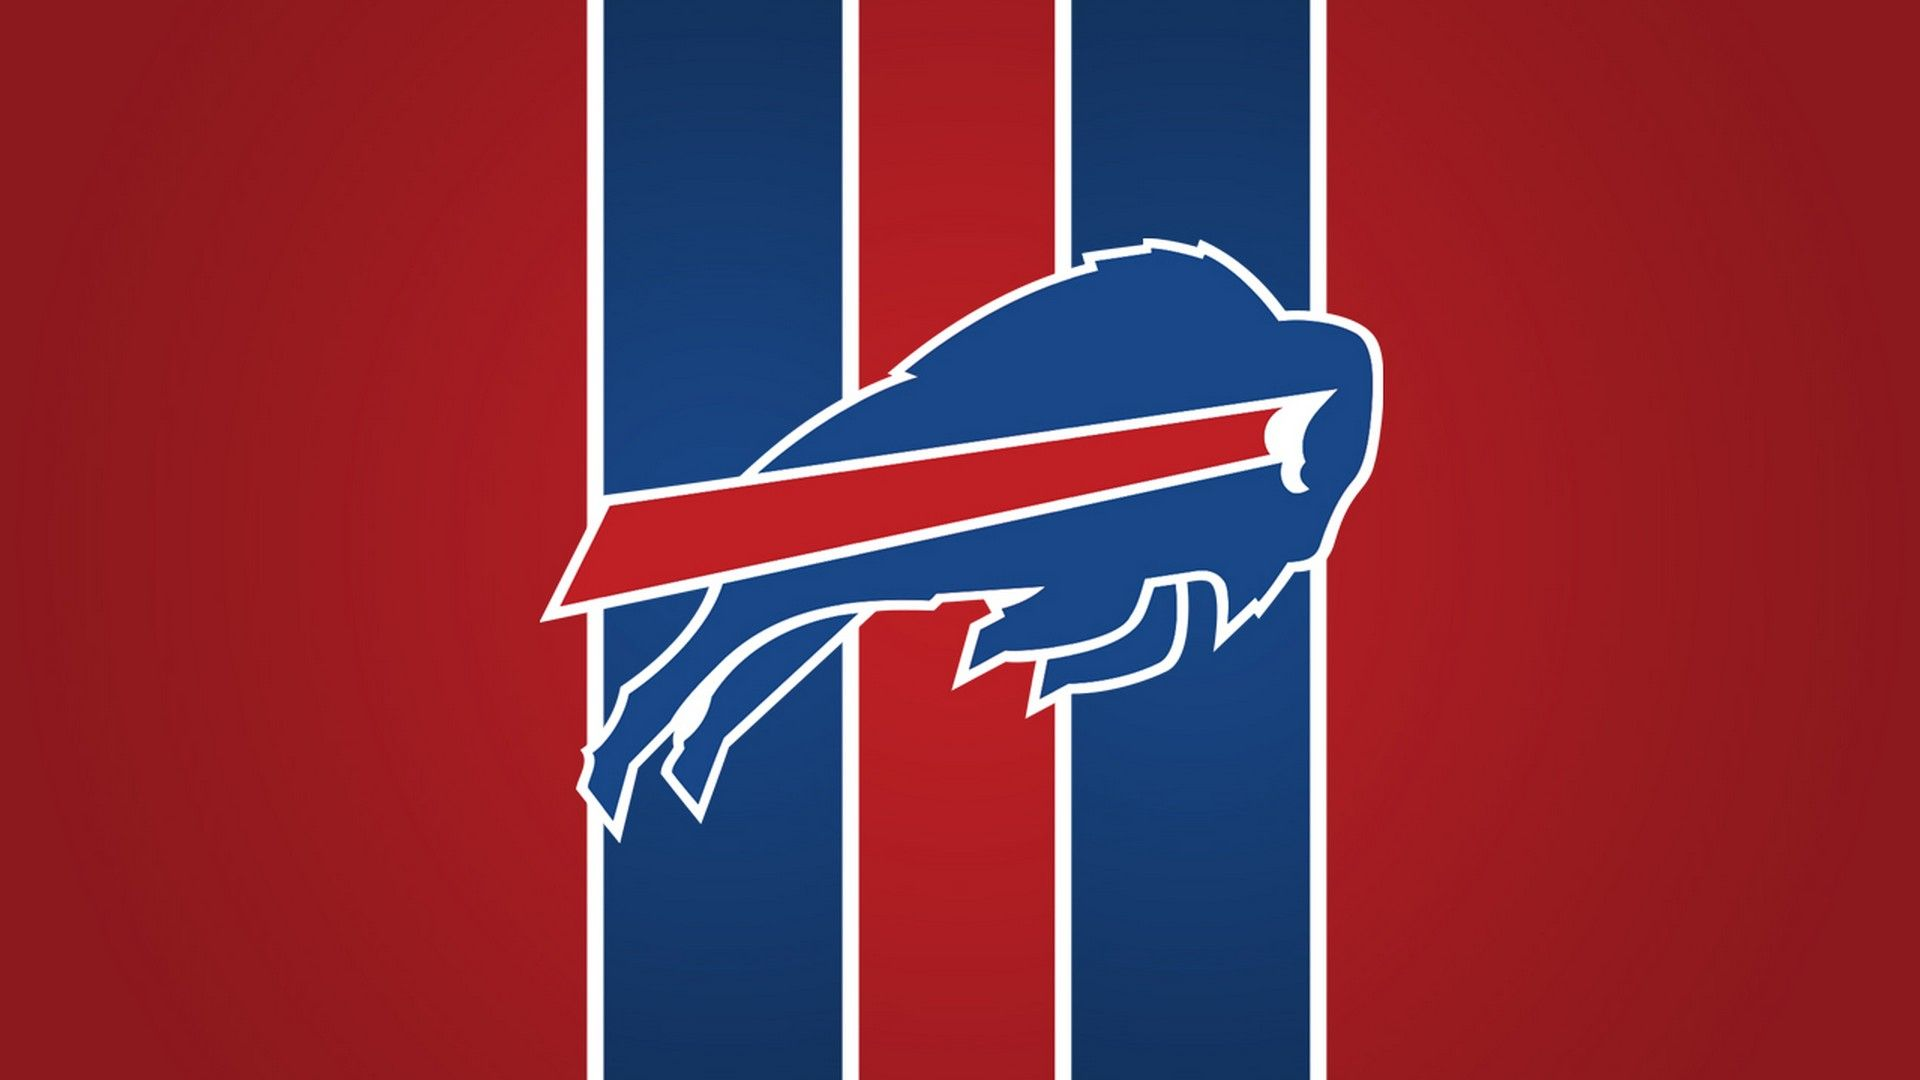 Buffalo Bills For Desktop Wallpaper Wallpapers Buffalo bills 1920x1080